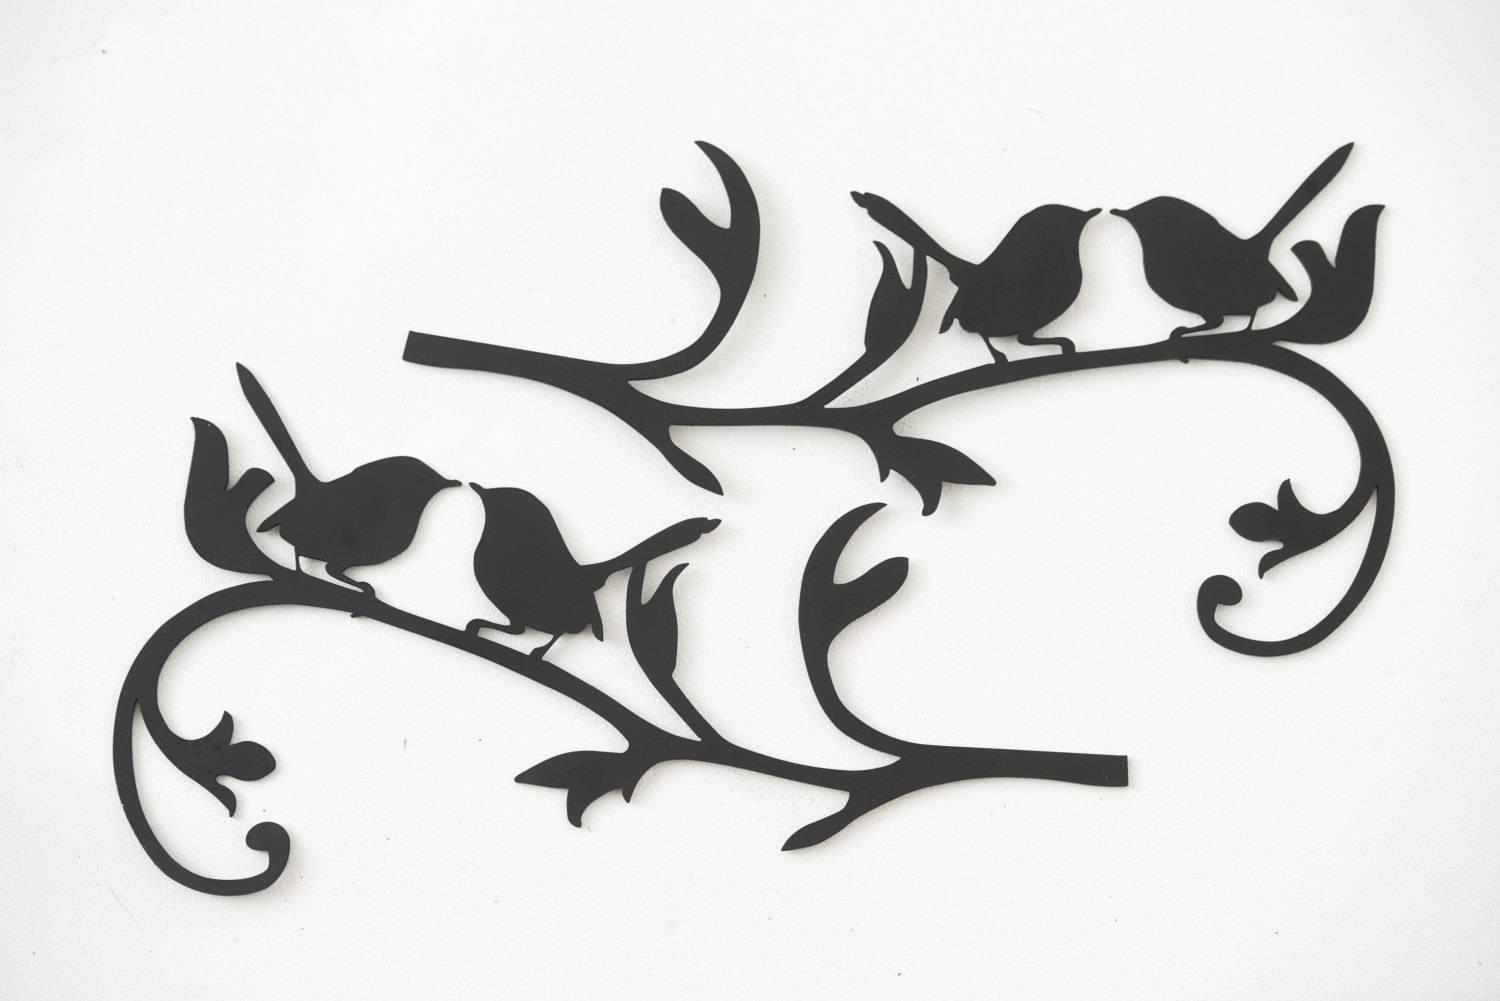 Wall Art Designs: Metal Bird Wall Art Hand Drawn And Laser Cut Intended For Most Popular Metal Wall Art Birds (View 16 of 20)